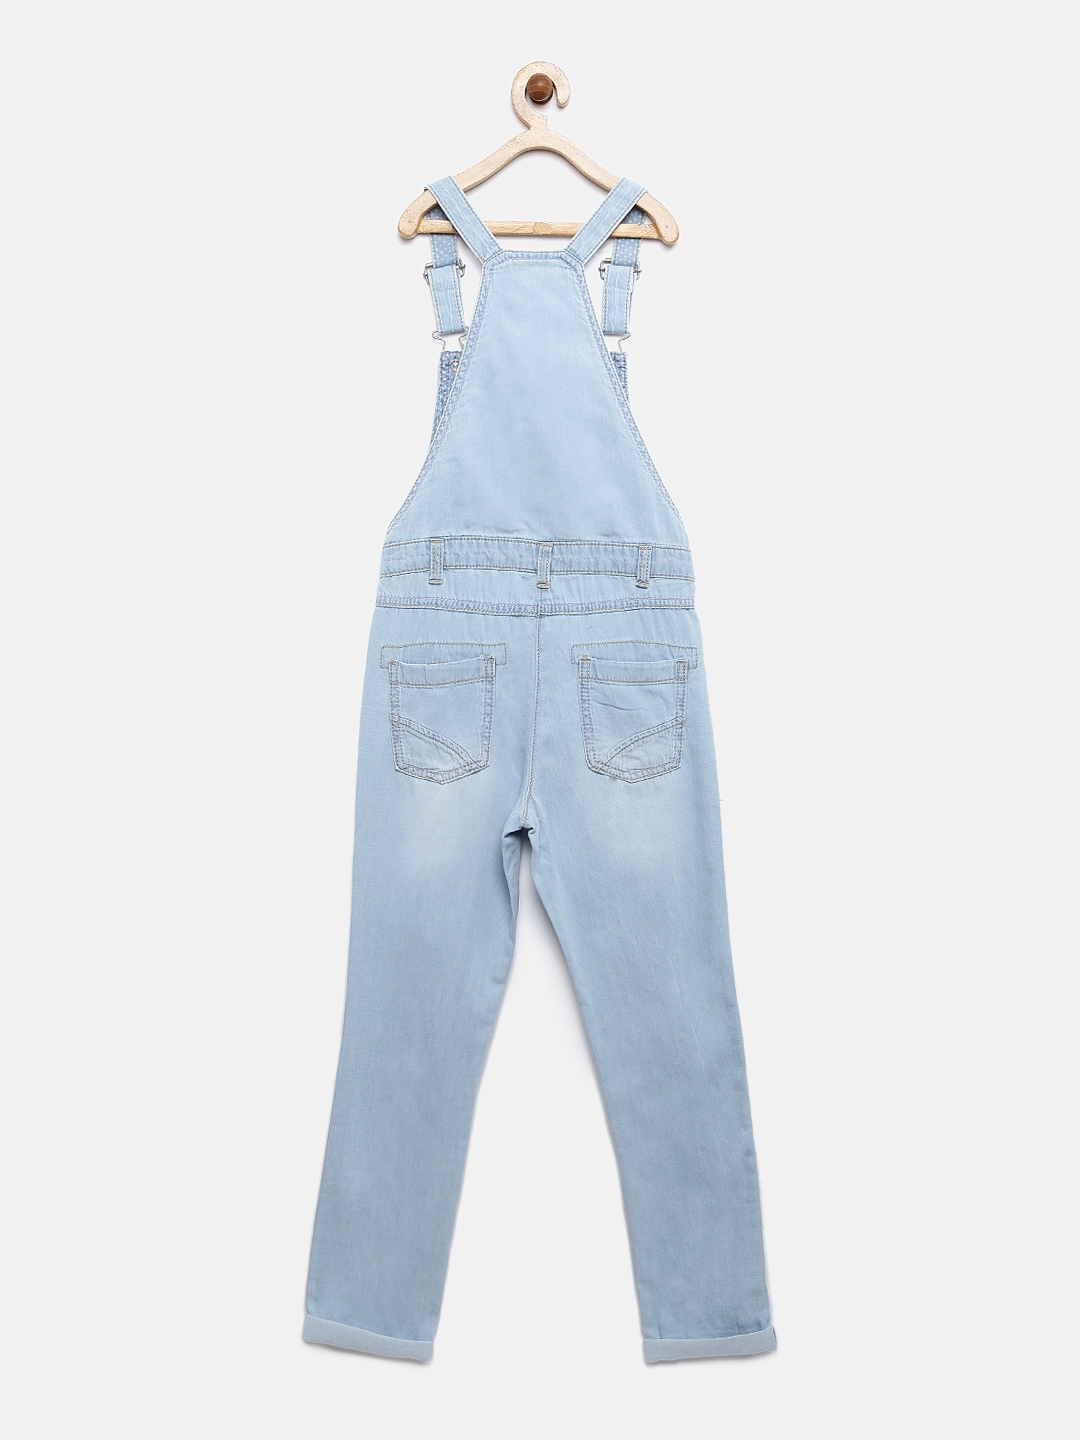 2d06e0630 Lee Cooper Girls Blue Washed Denim Dungarees. This product is already at  its best price